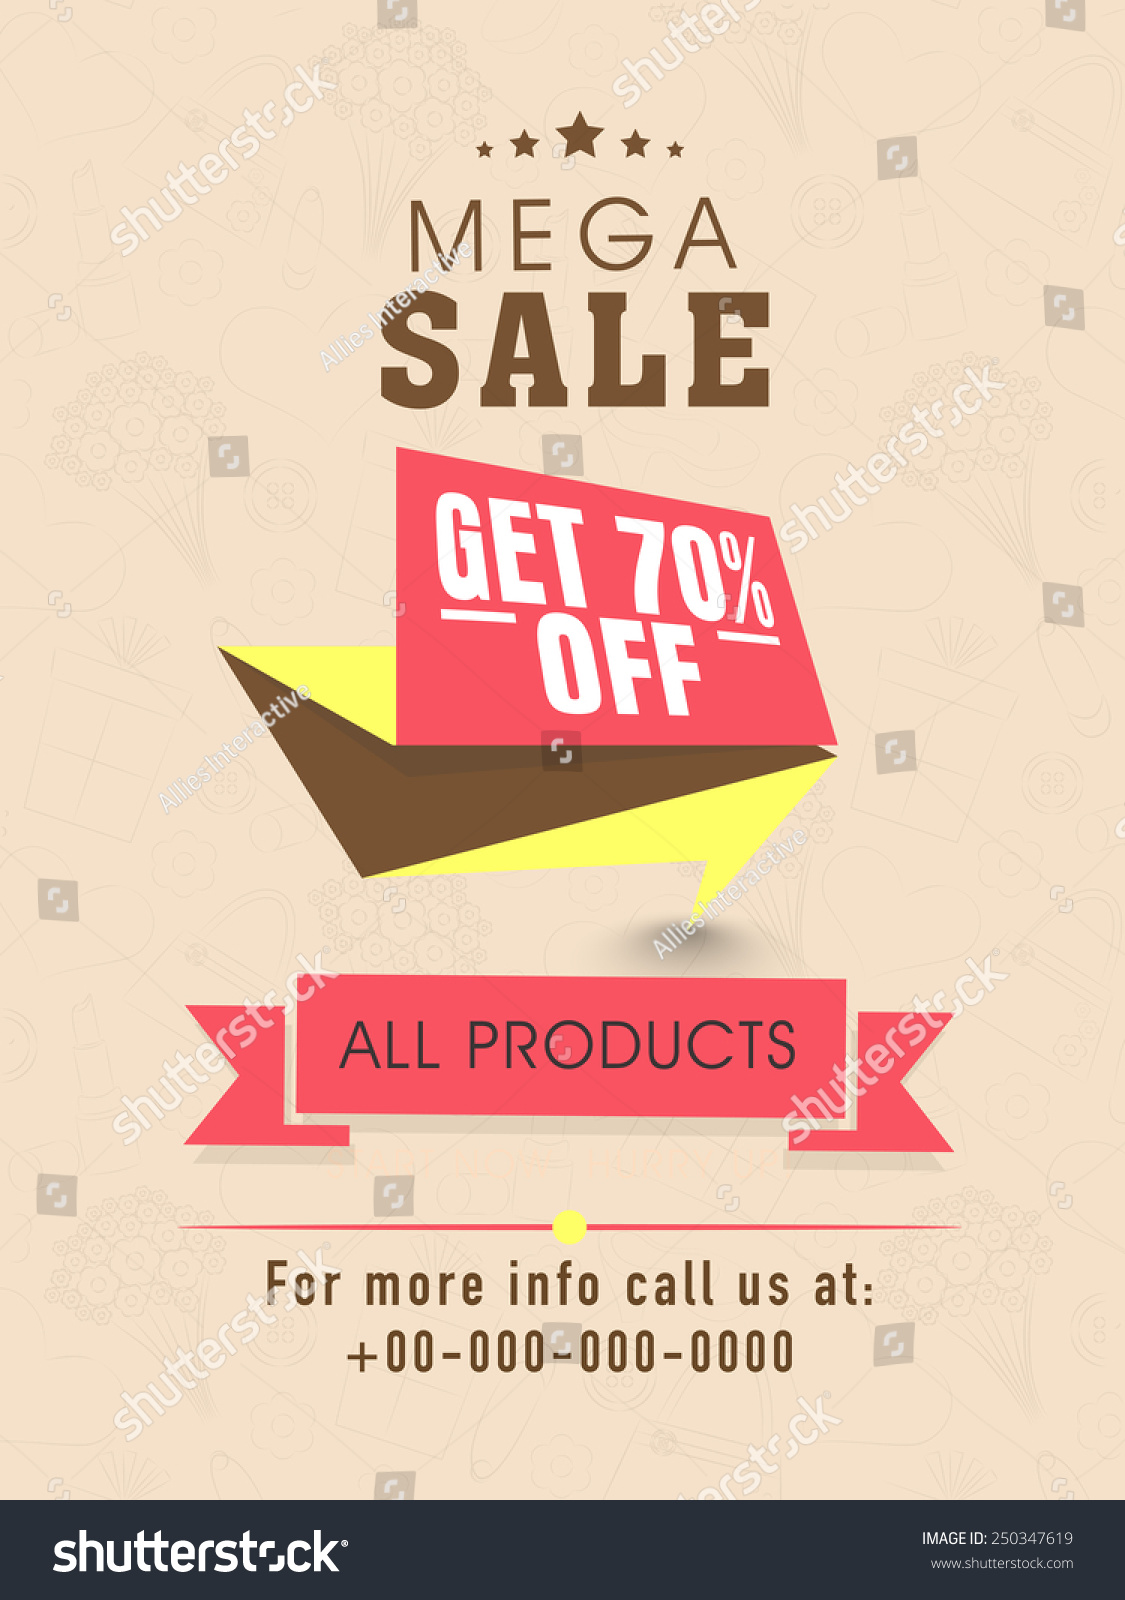 mega flyer banner template design stock vector  mega flyer banner or template design discount offer on all products